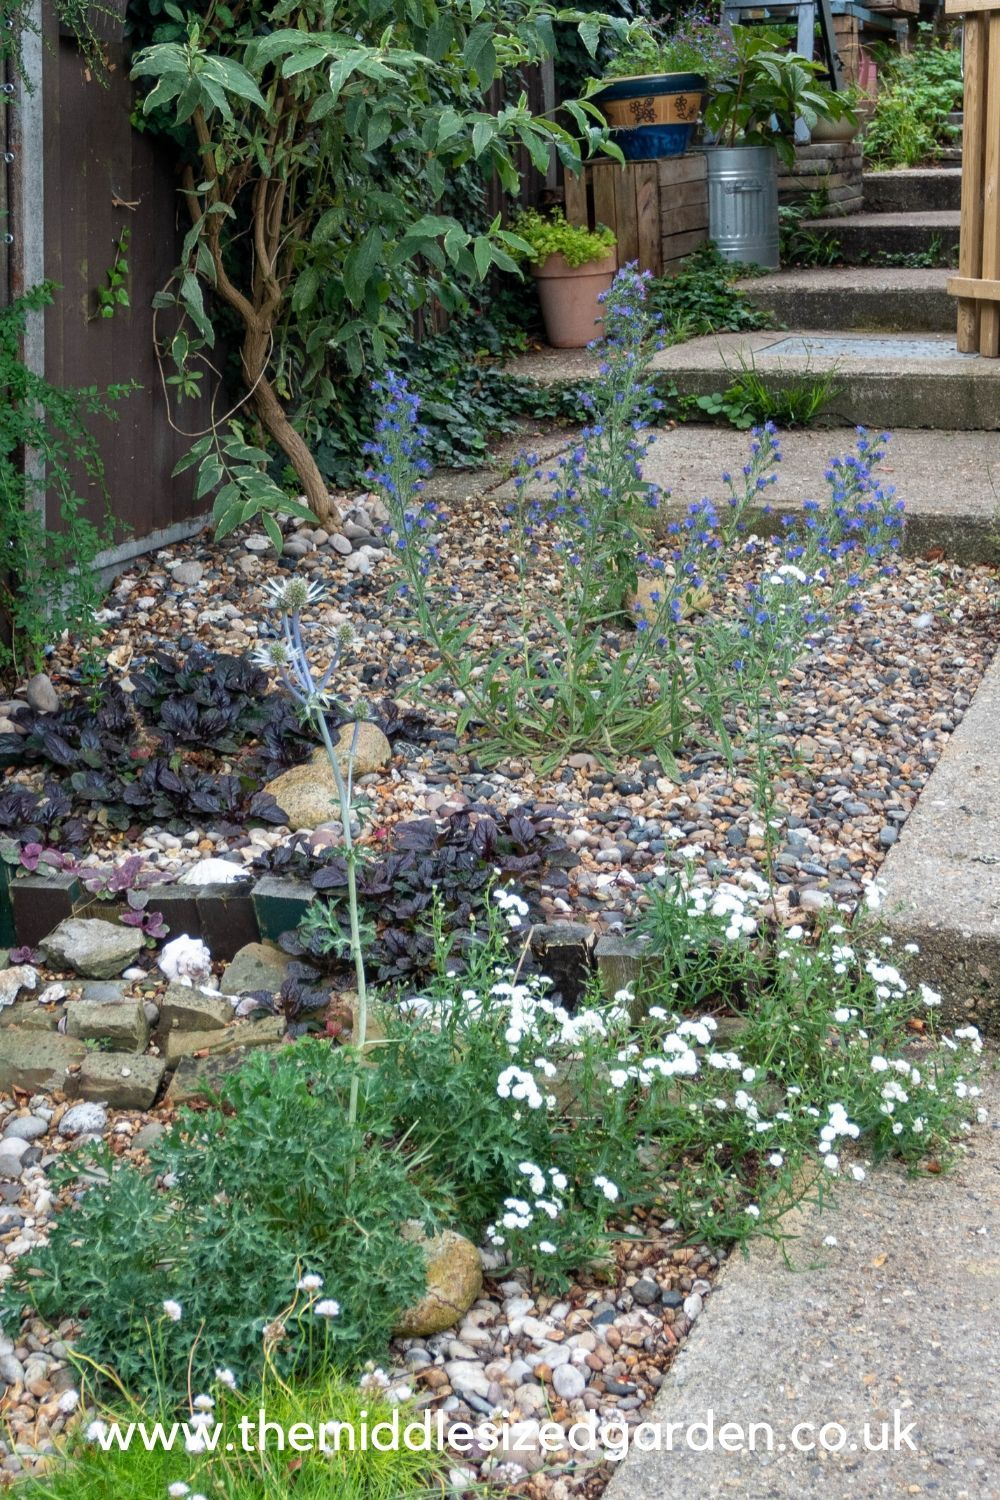 North facing garden tips - how to make the most of your ...